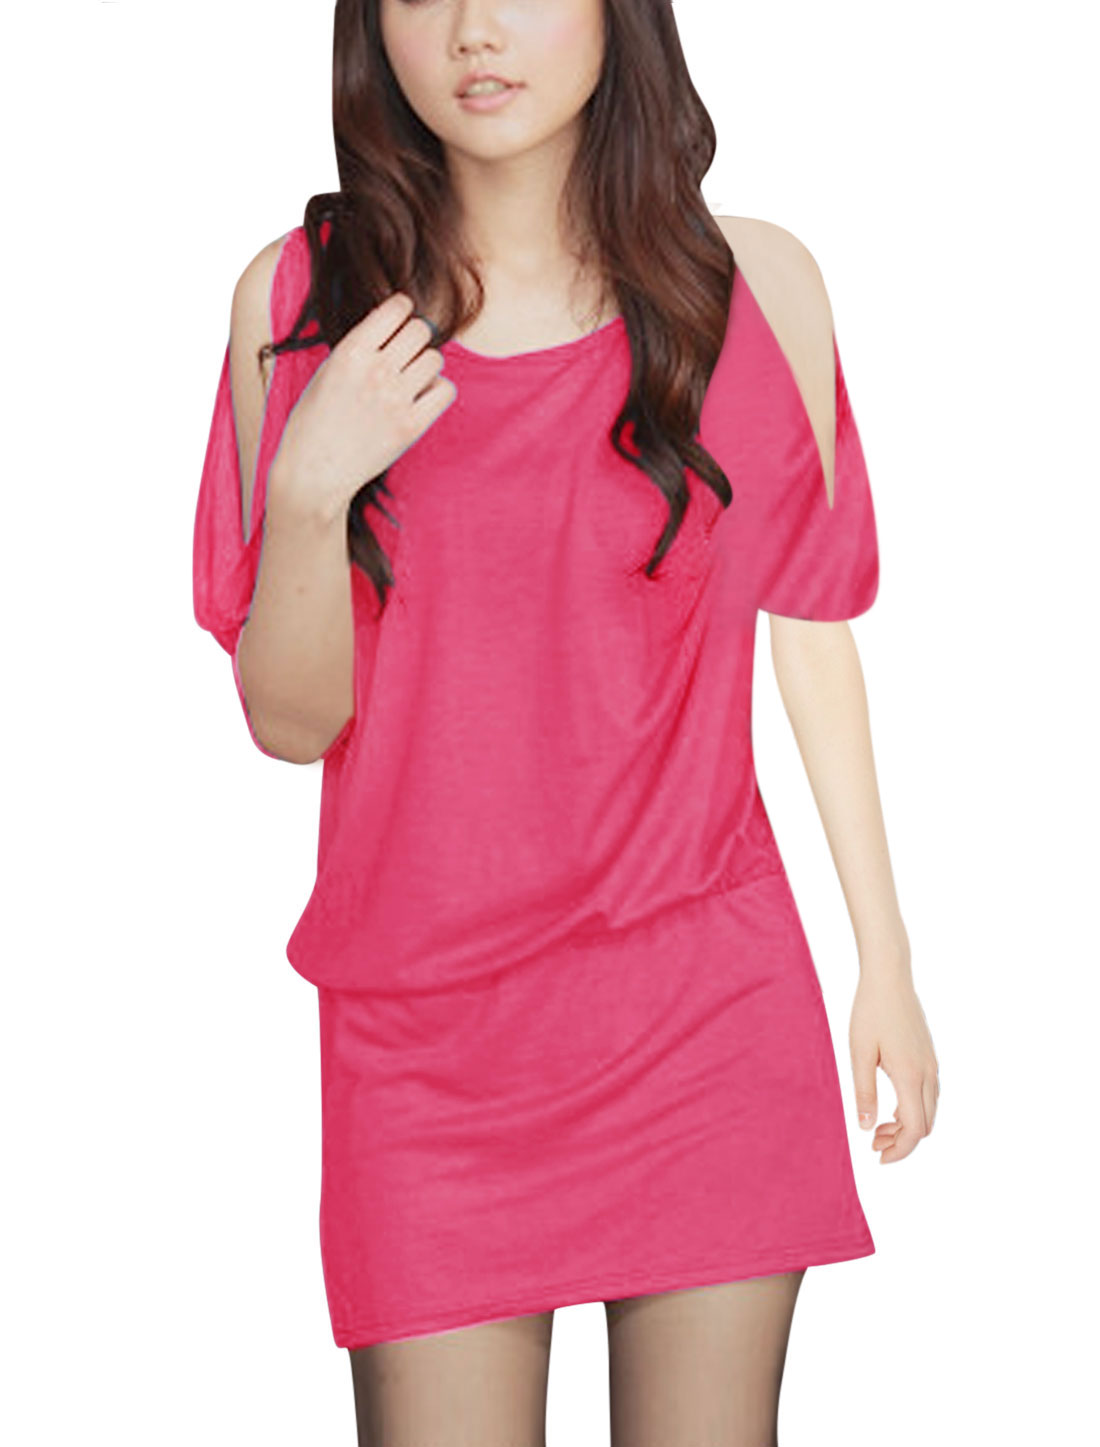 Lady's Round Neck Cut out Shoulder Elastic Waist Blouson Dress Fuchsia S